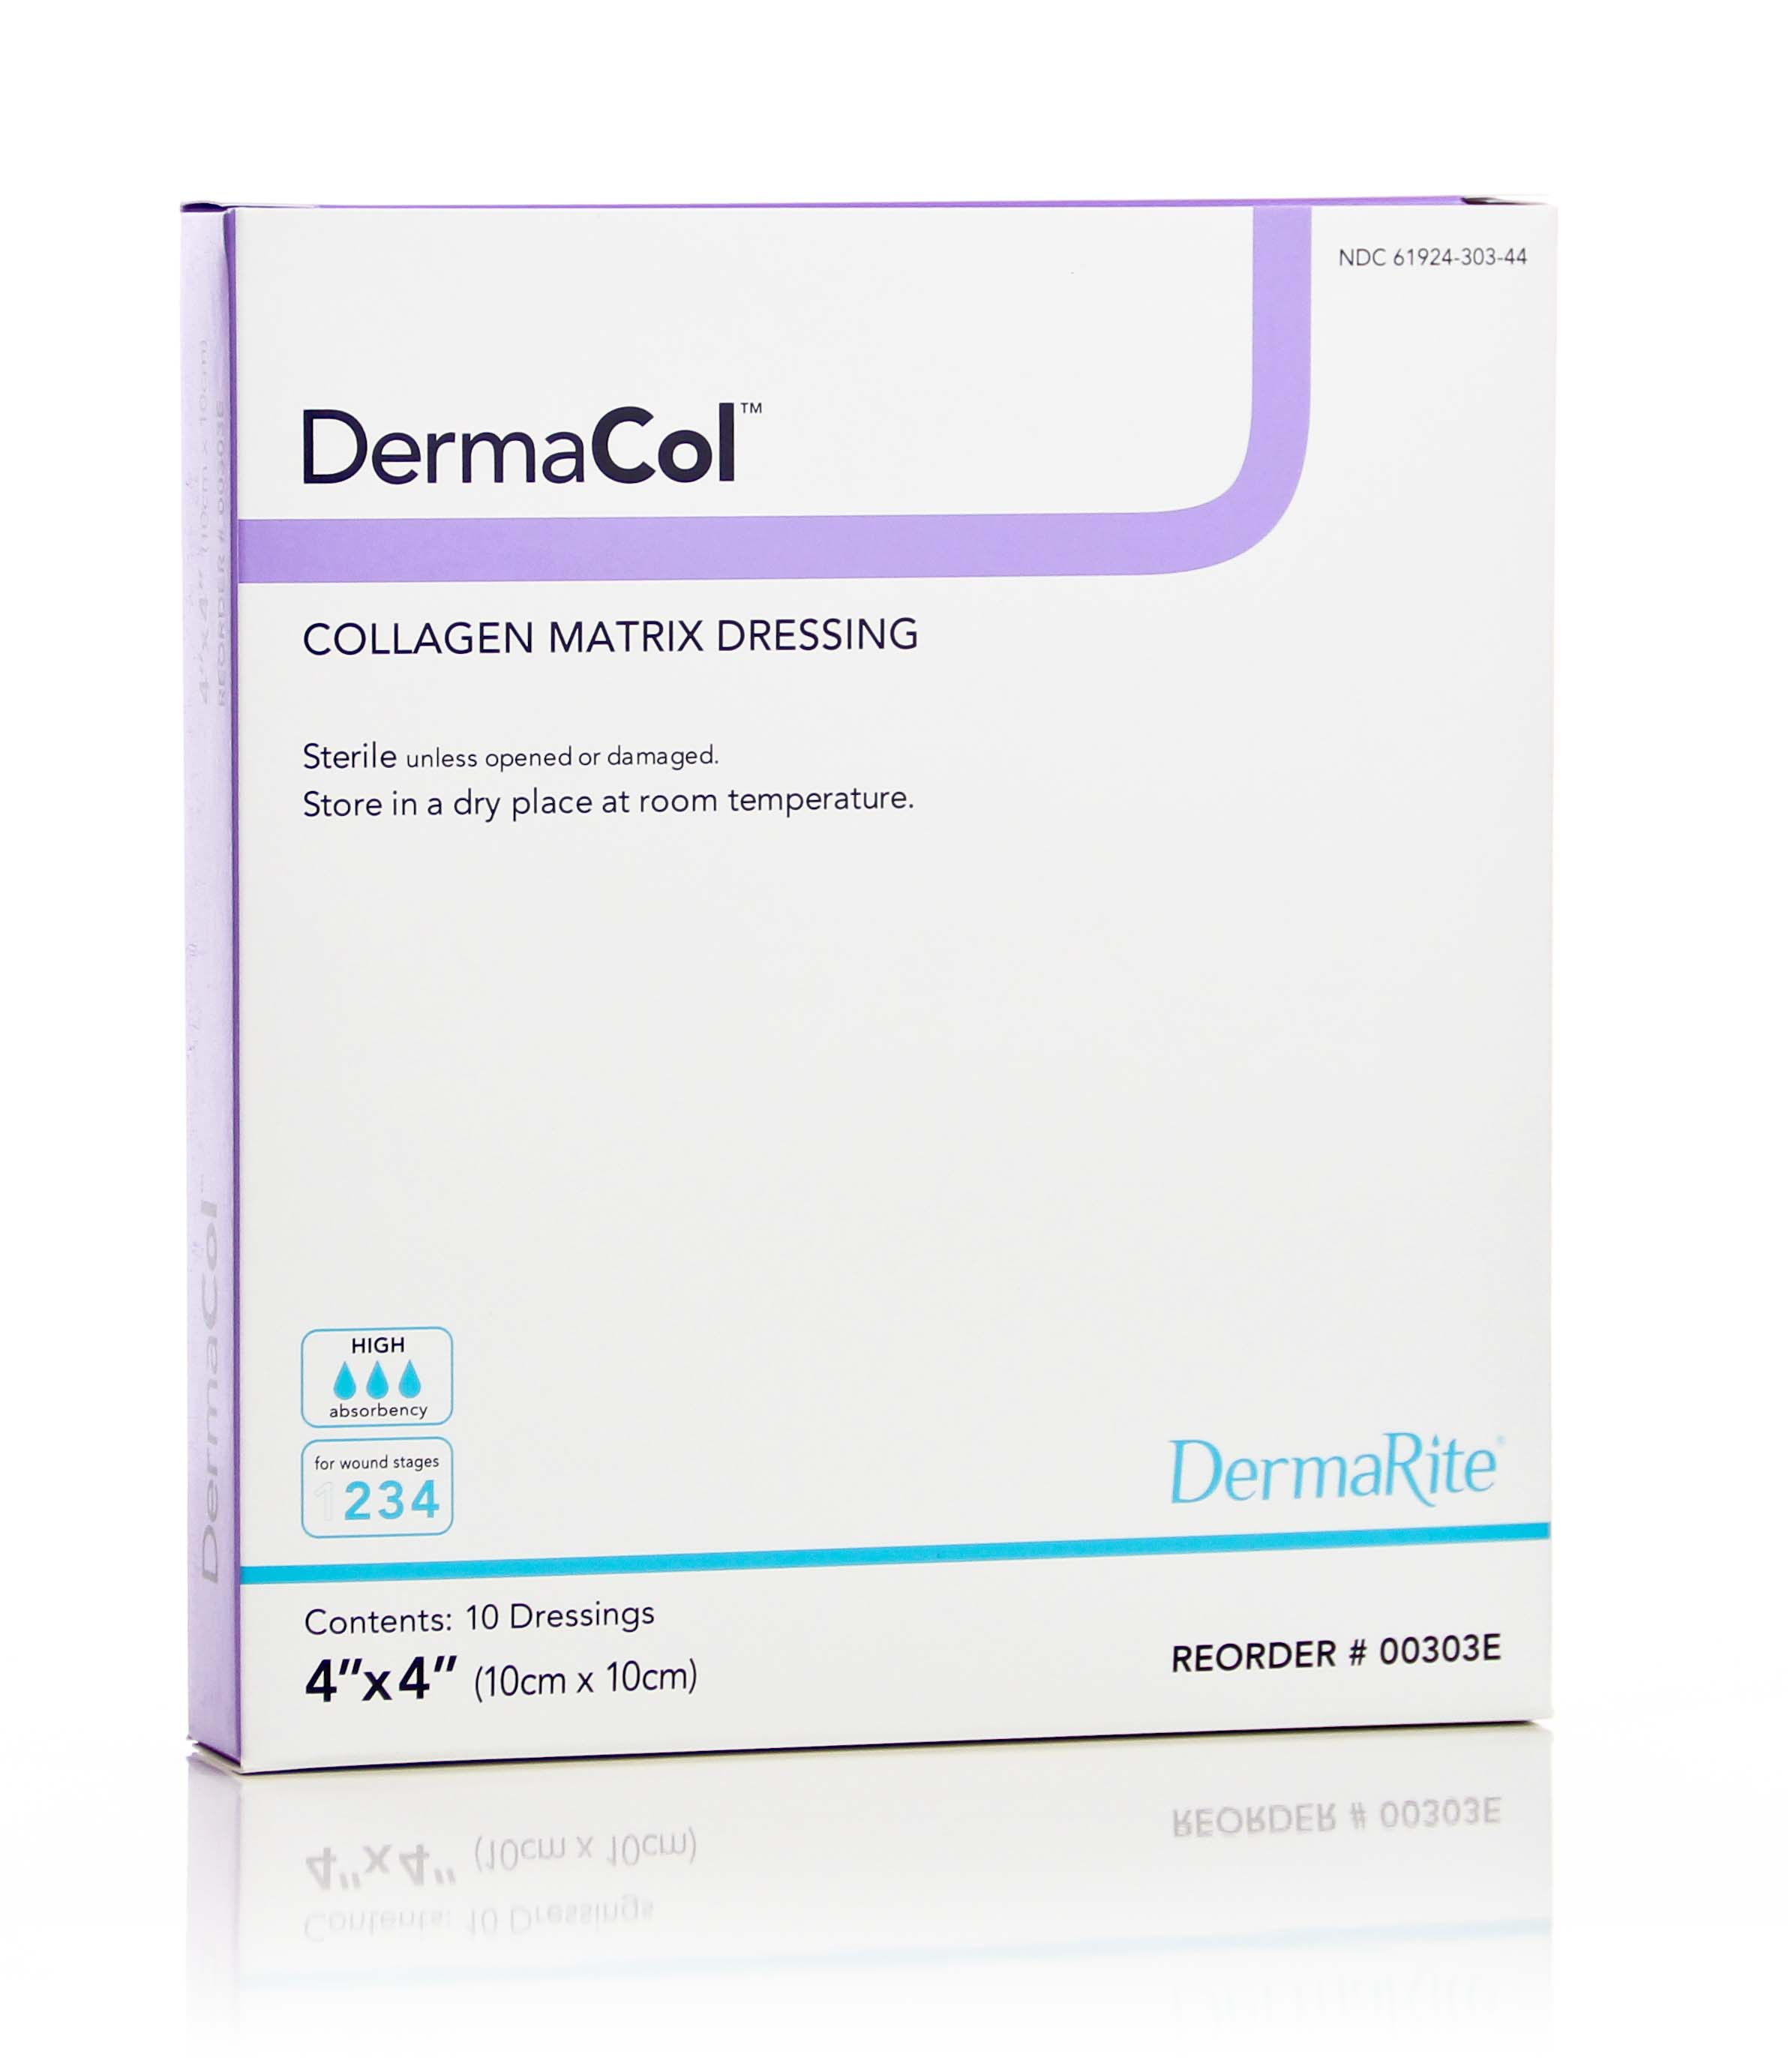 soft collagen sodium alginate carboxyl methylcellulose gel advanced wound care dressing deep wound management